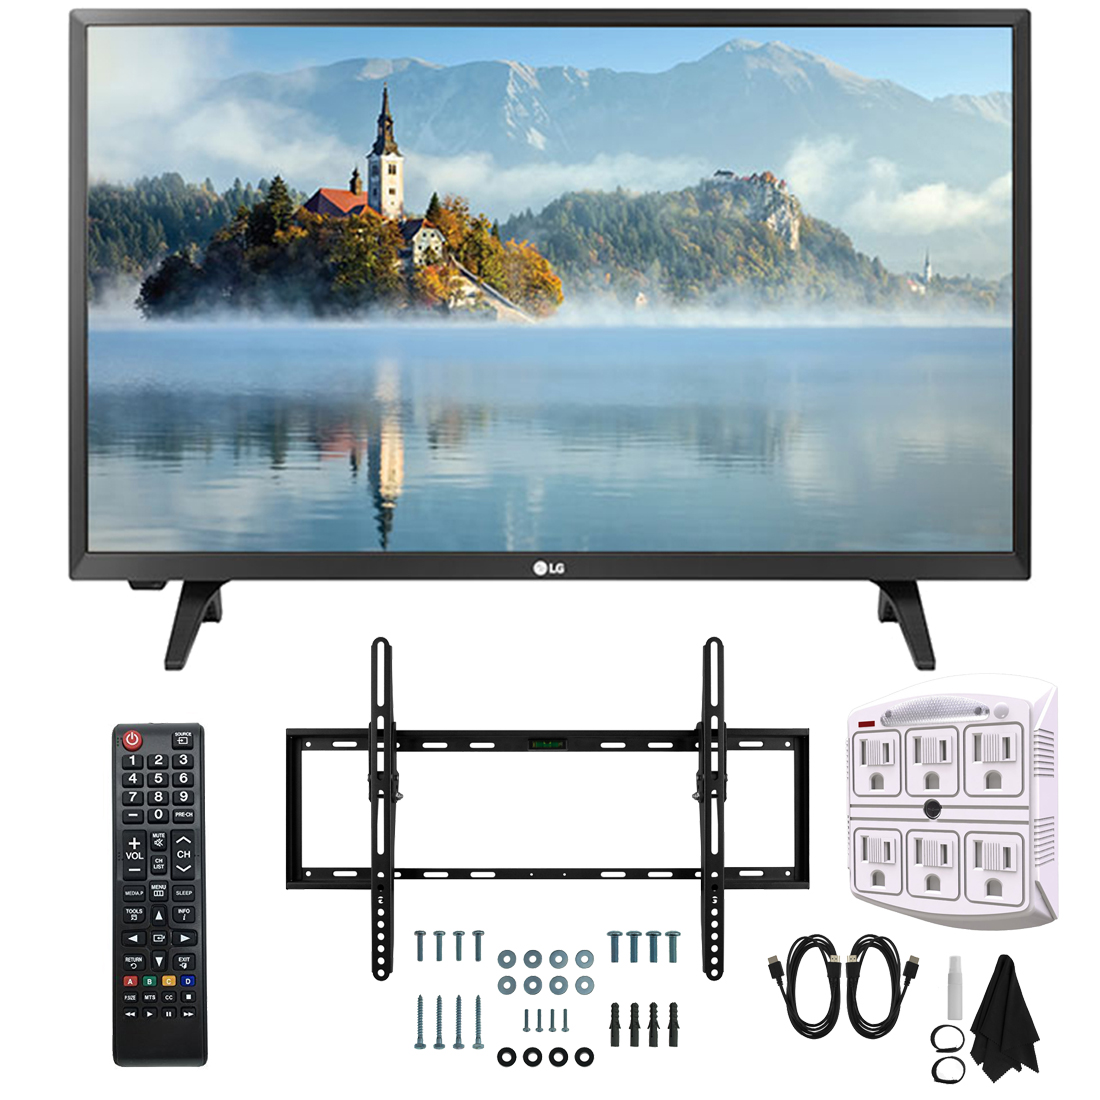 """LG 28LJ430B-PU 28"""" Class HD 720p LED TV (2017 Model) with Slim Flat Wall Mount Kit and 750 Joule 6-Outlet Surge Adapter Ultimate Bundle"""